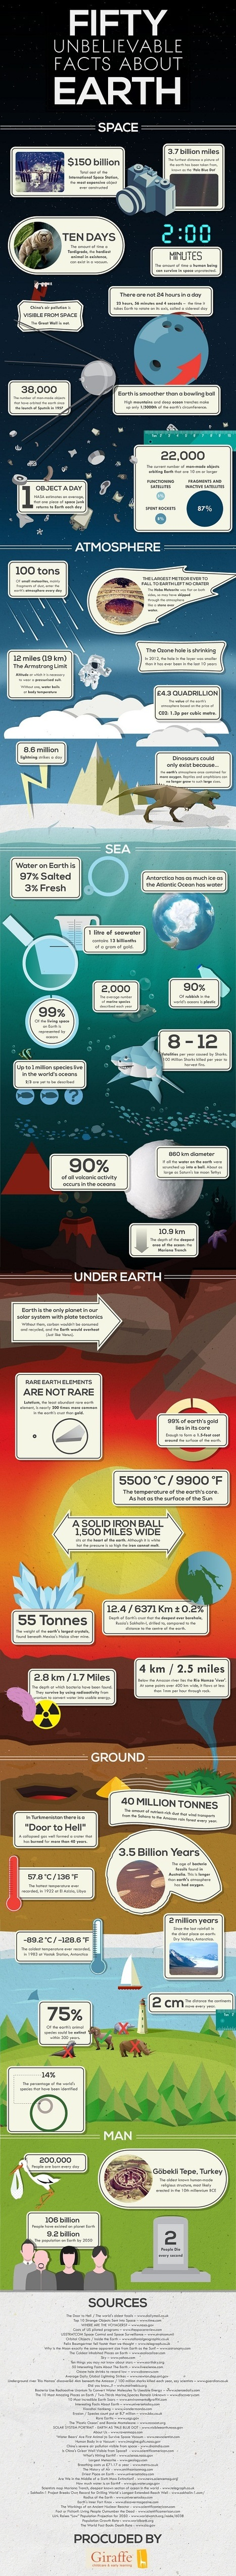 50 Awesome Facts About Earth To Share With Your Class [Infographic] | Teaching Tools Today | Scoop.it